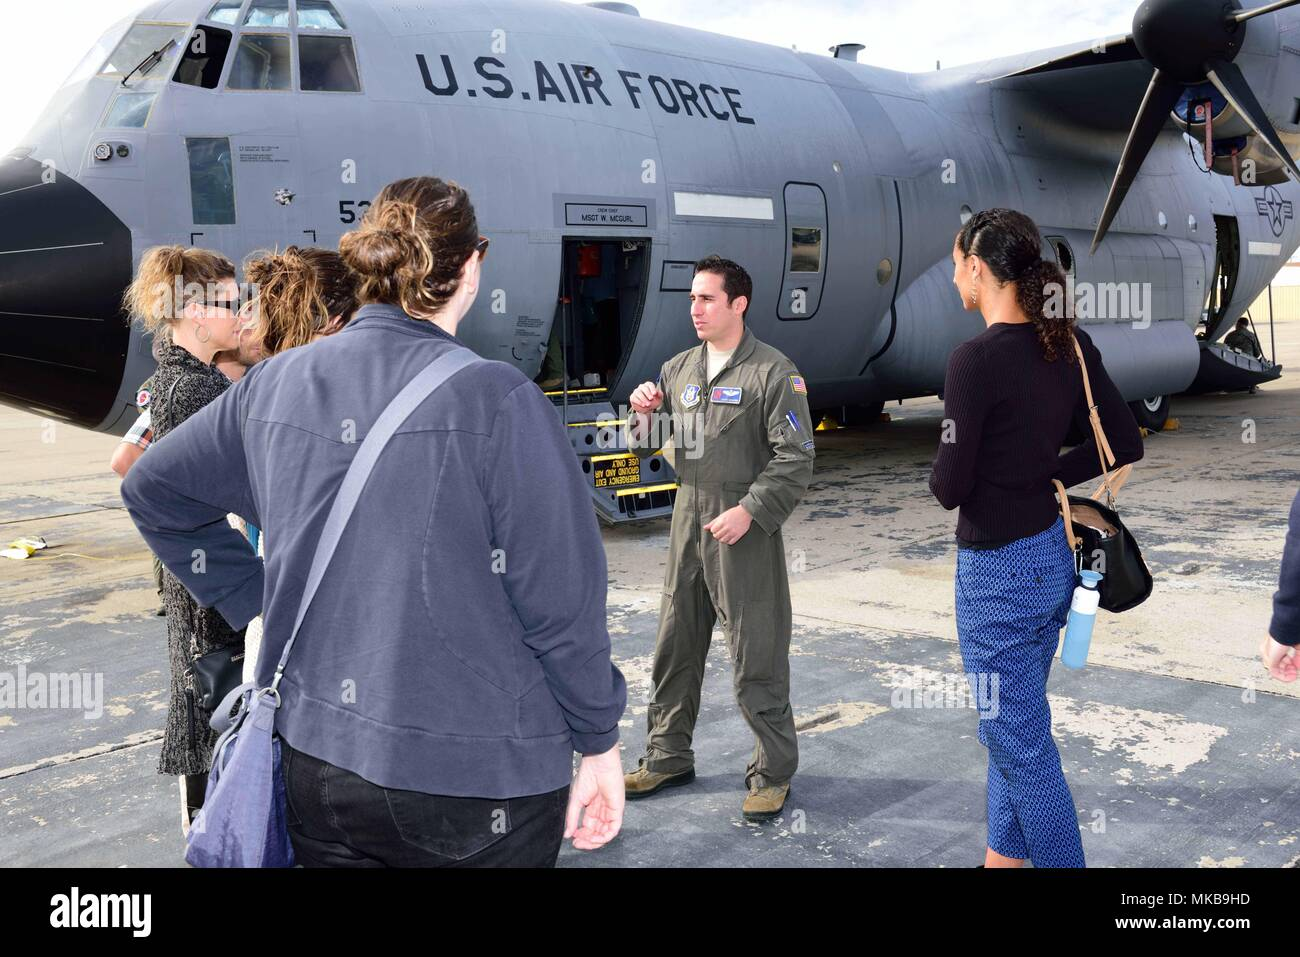 """Maj. John Gharbi, 53rd Weather Reconnaissance Squadron navigator, explains the mission of the 53rd WRS """"Hurricane Hunters"""" to students and researchers from the Scripps Institute of Oceanography Nov. 29, 2017, at Brown Field Airport, San Diego, California. Hurricane Hunters met with Scripps scientists that day to discuss plans for participating in atmospheric river reconnaissance missions in early 2018. (U.S. Air Force photo by Tech. Sgt. Ryan Labadens) - Stock Image"""